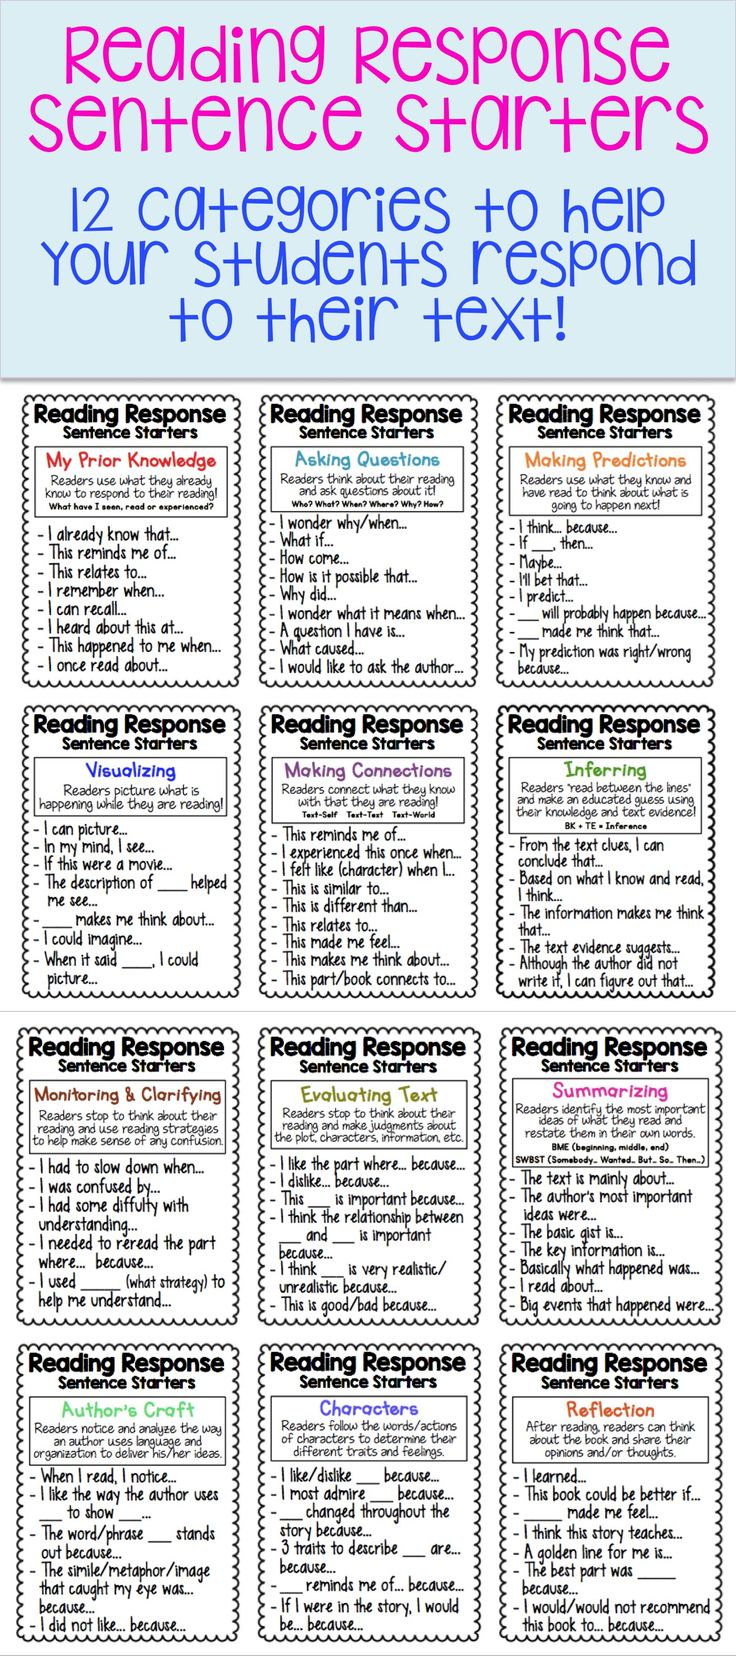 best sentence starters ideas what are reading  over 80 sentence starters among 12 different categories perfect for reading response journals includes